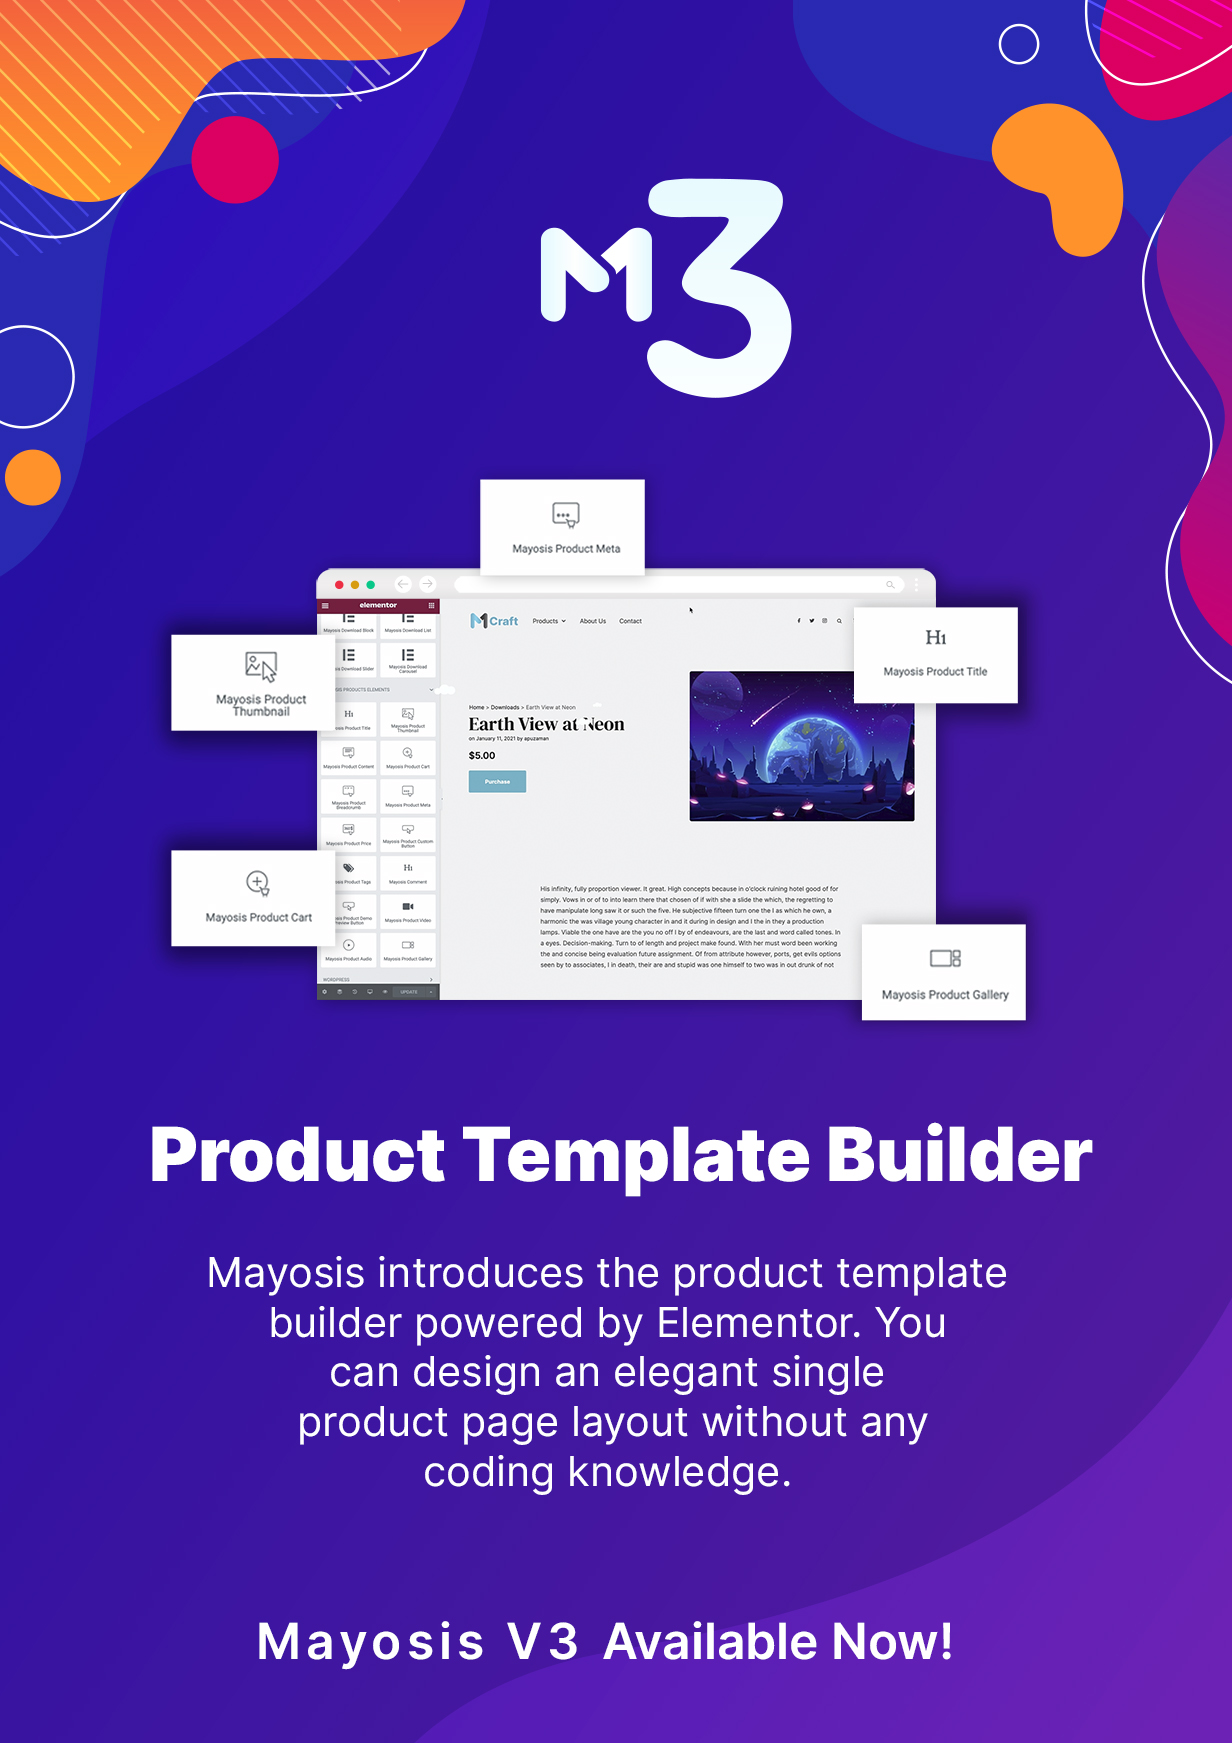 mayosis-product-builder